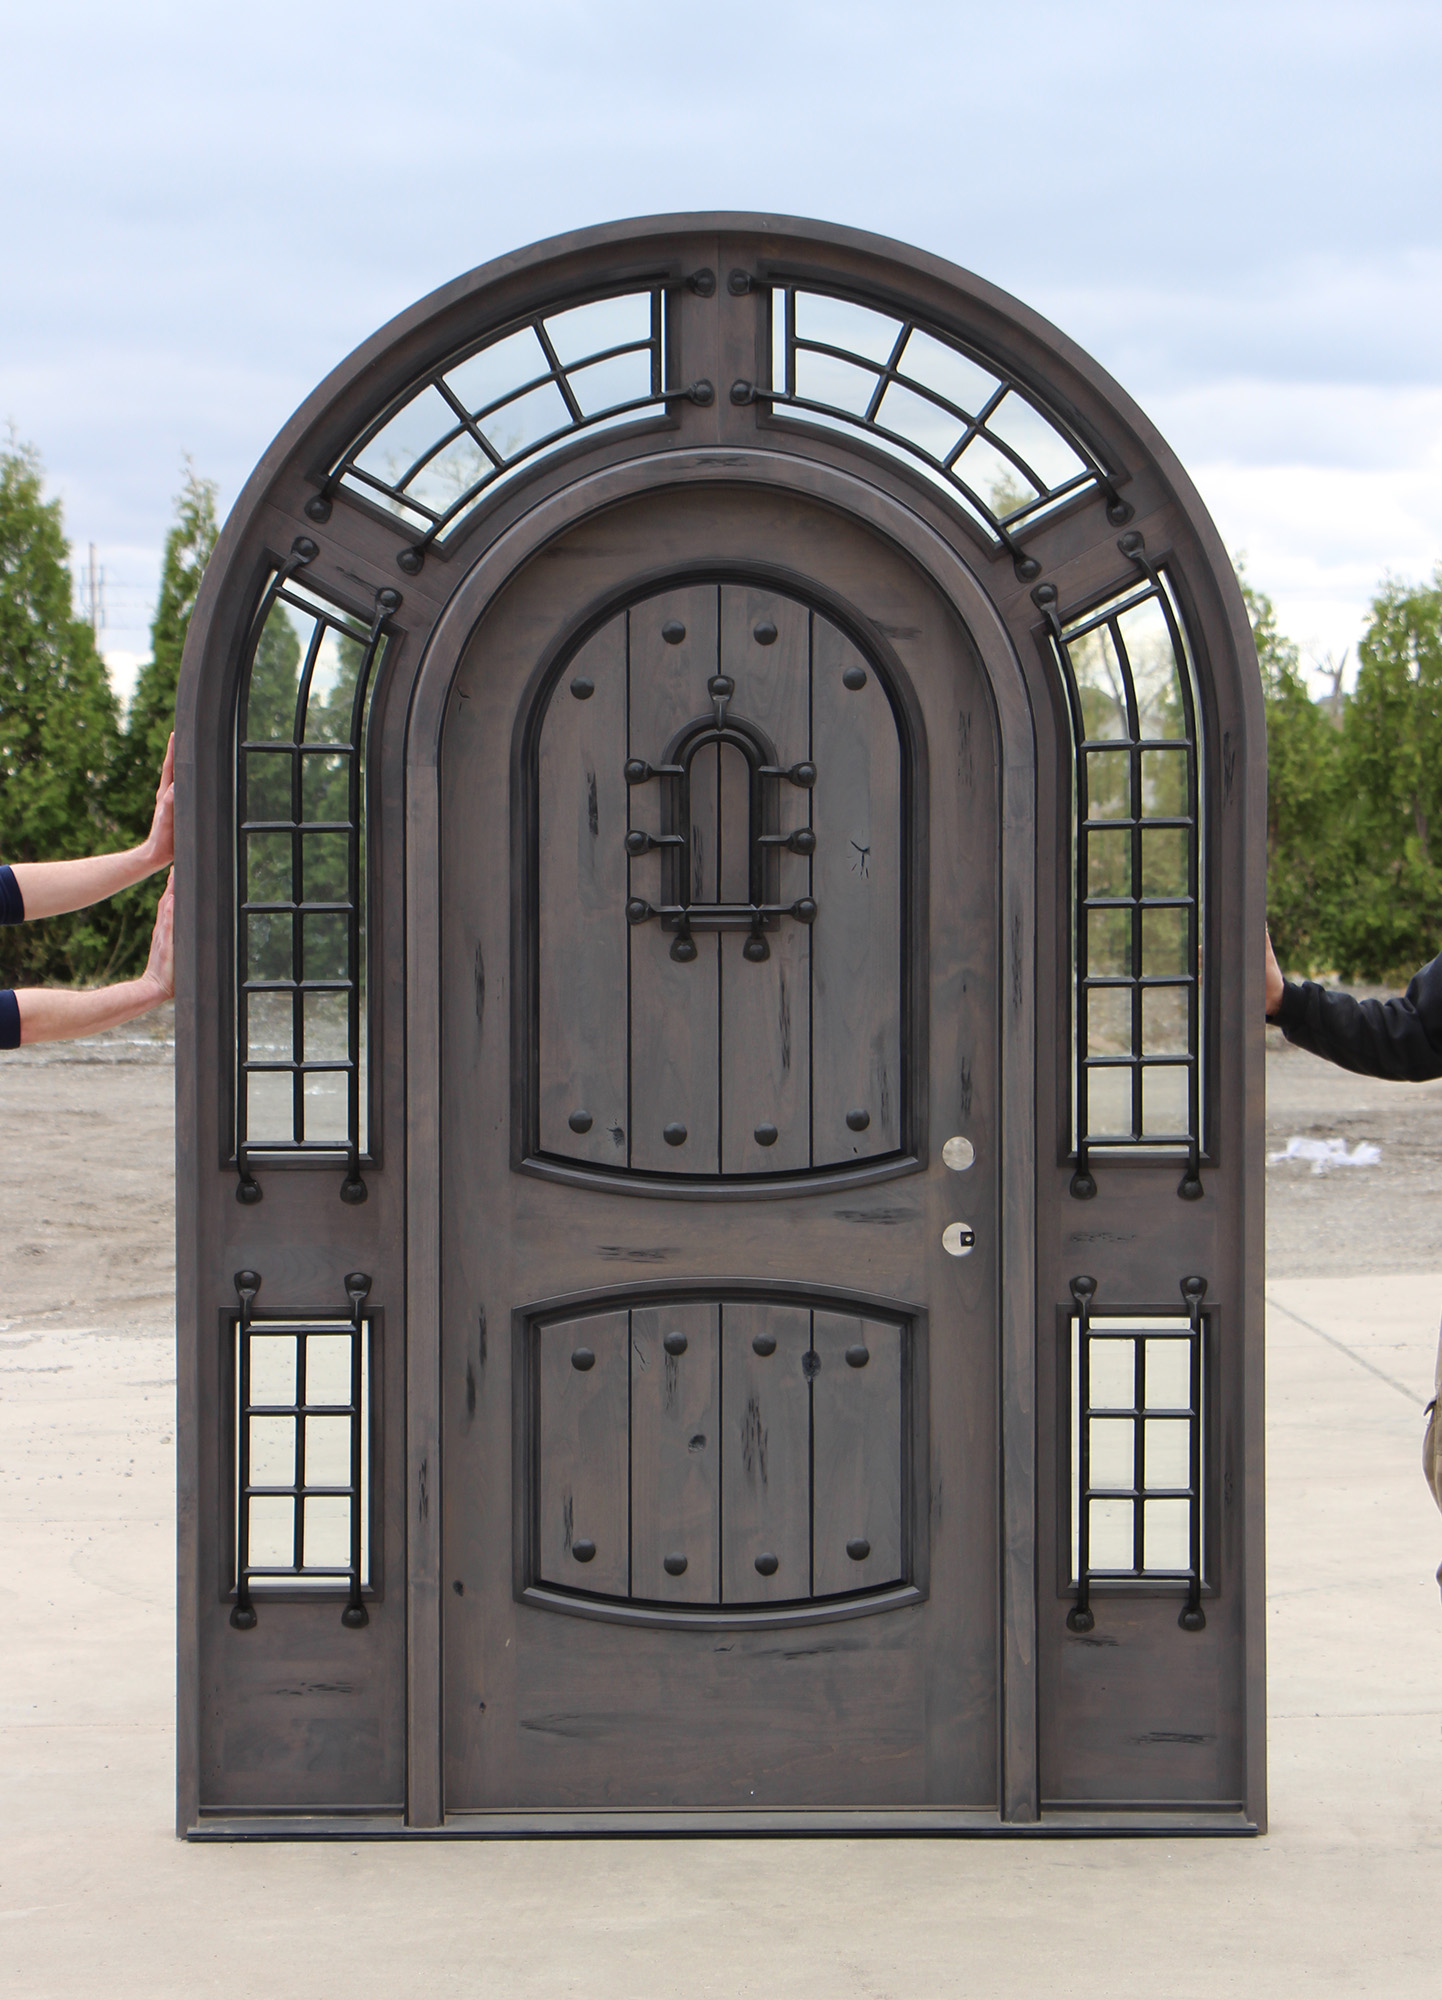 2000 #4F5C33 Knotty Alder Arched Door With Custom Finish Job save image Arch Doors Exterior 39771442